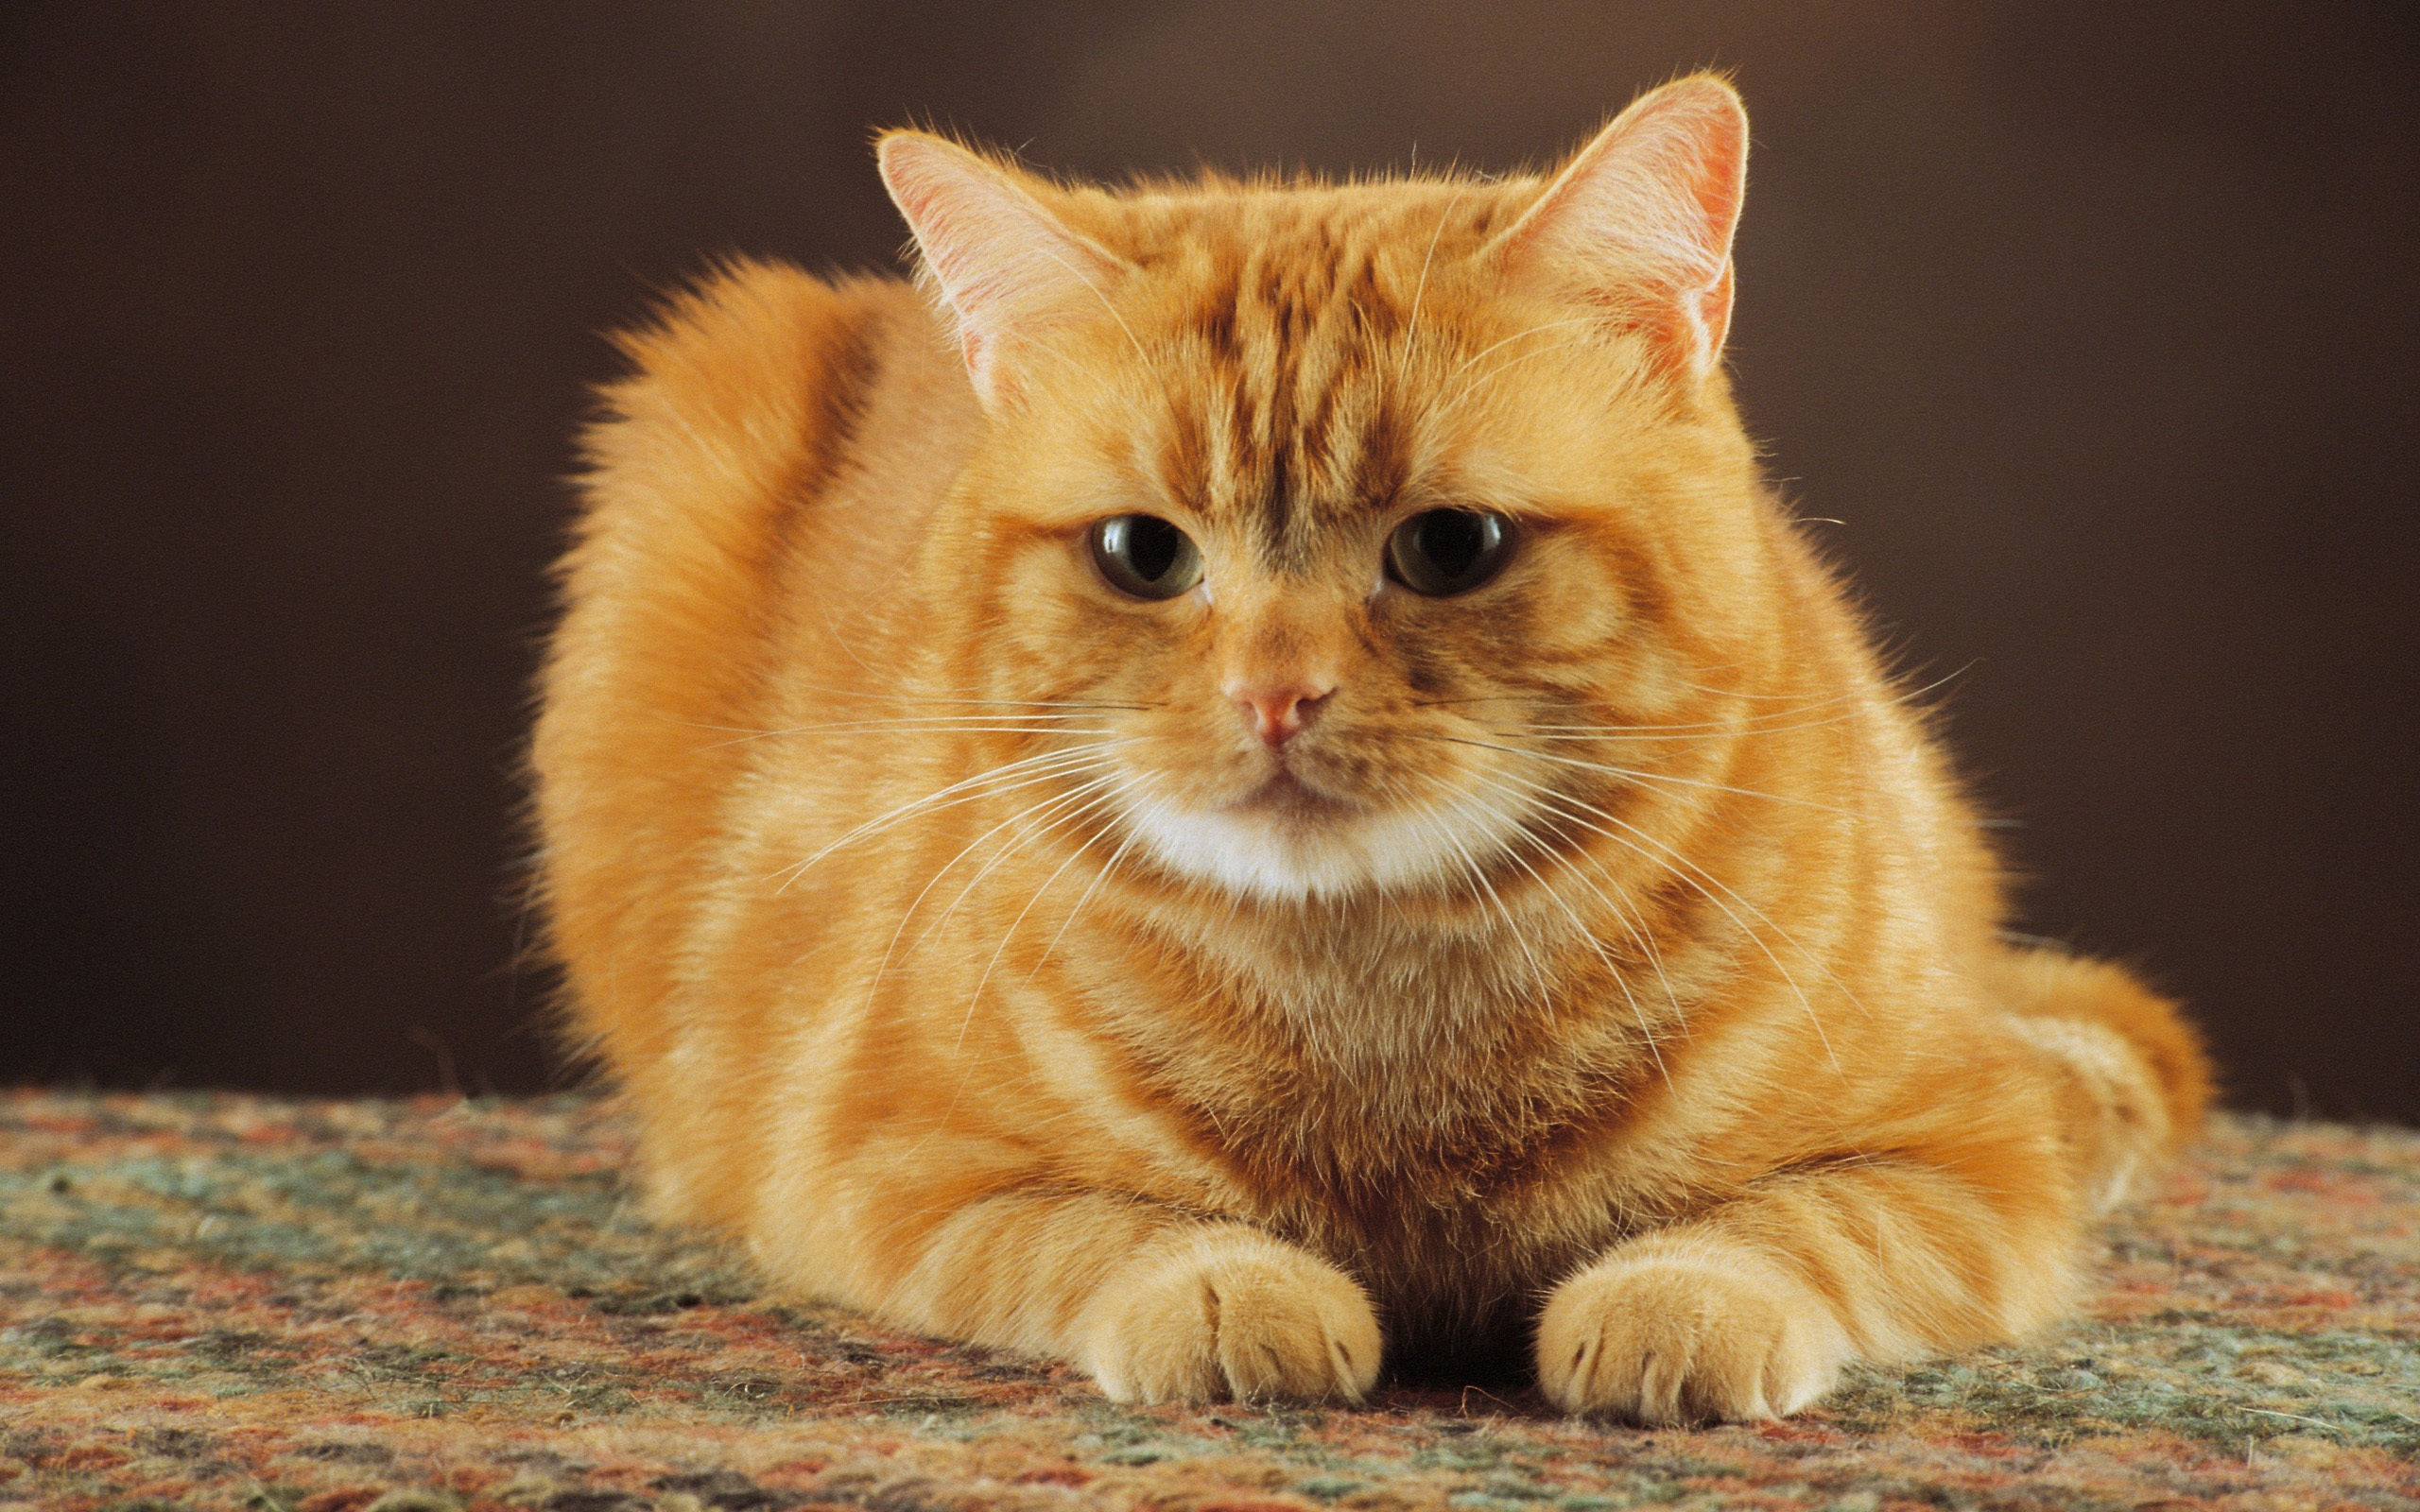 the-obedient-of-orange-color-cat-wide-hd-wallpaper-download-free